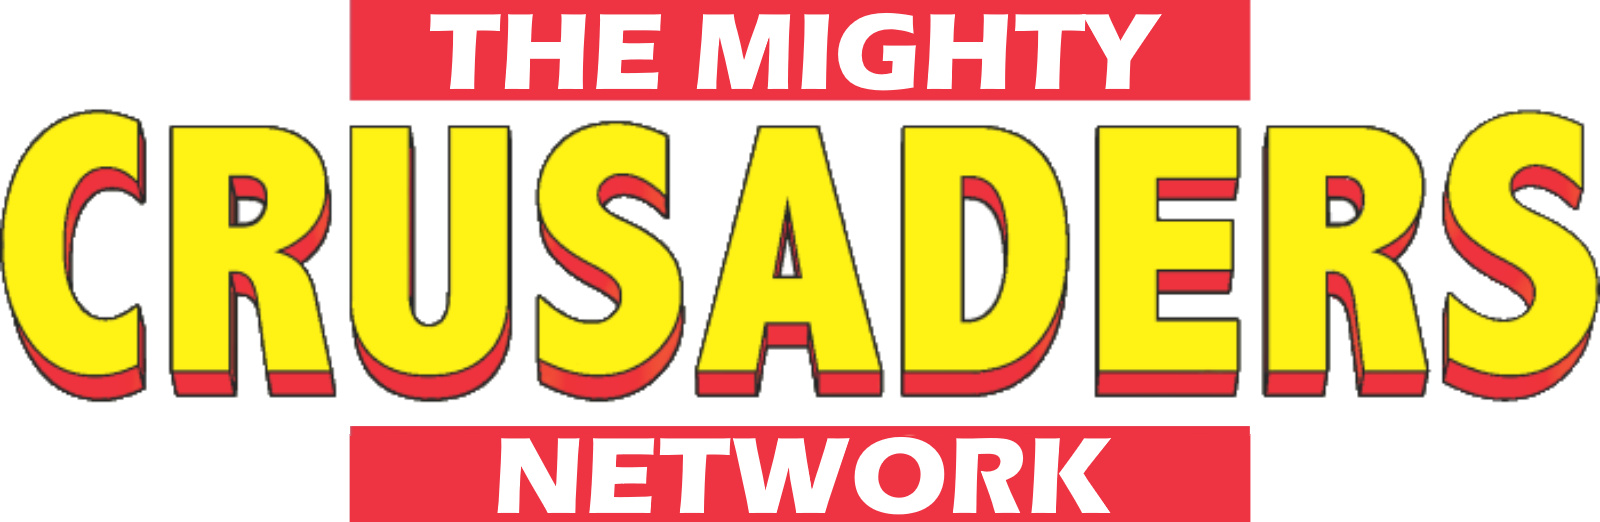 THE MIGHTY CRUSADERS NETWORK